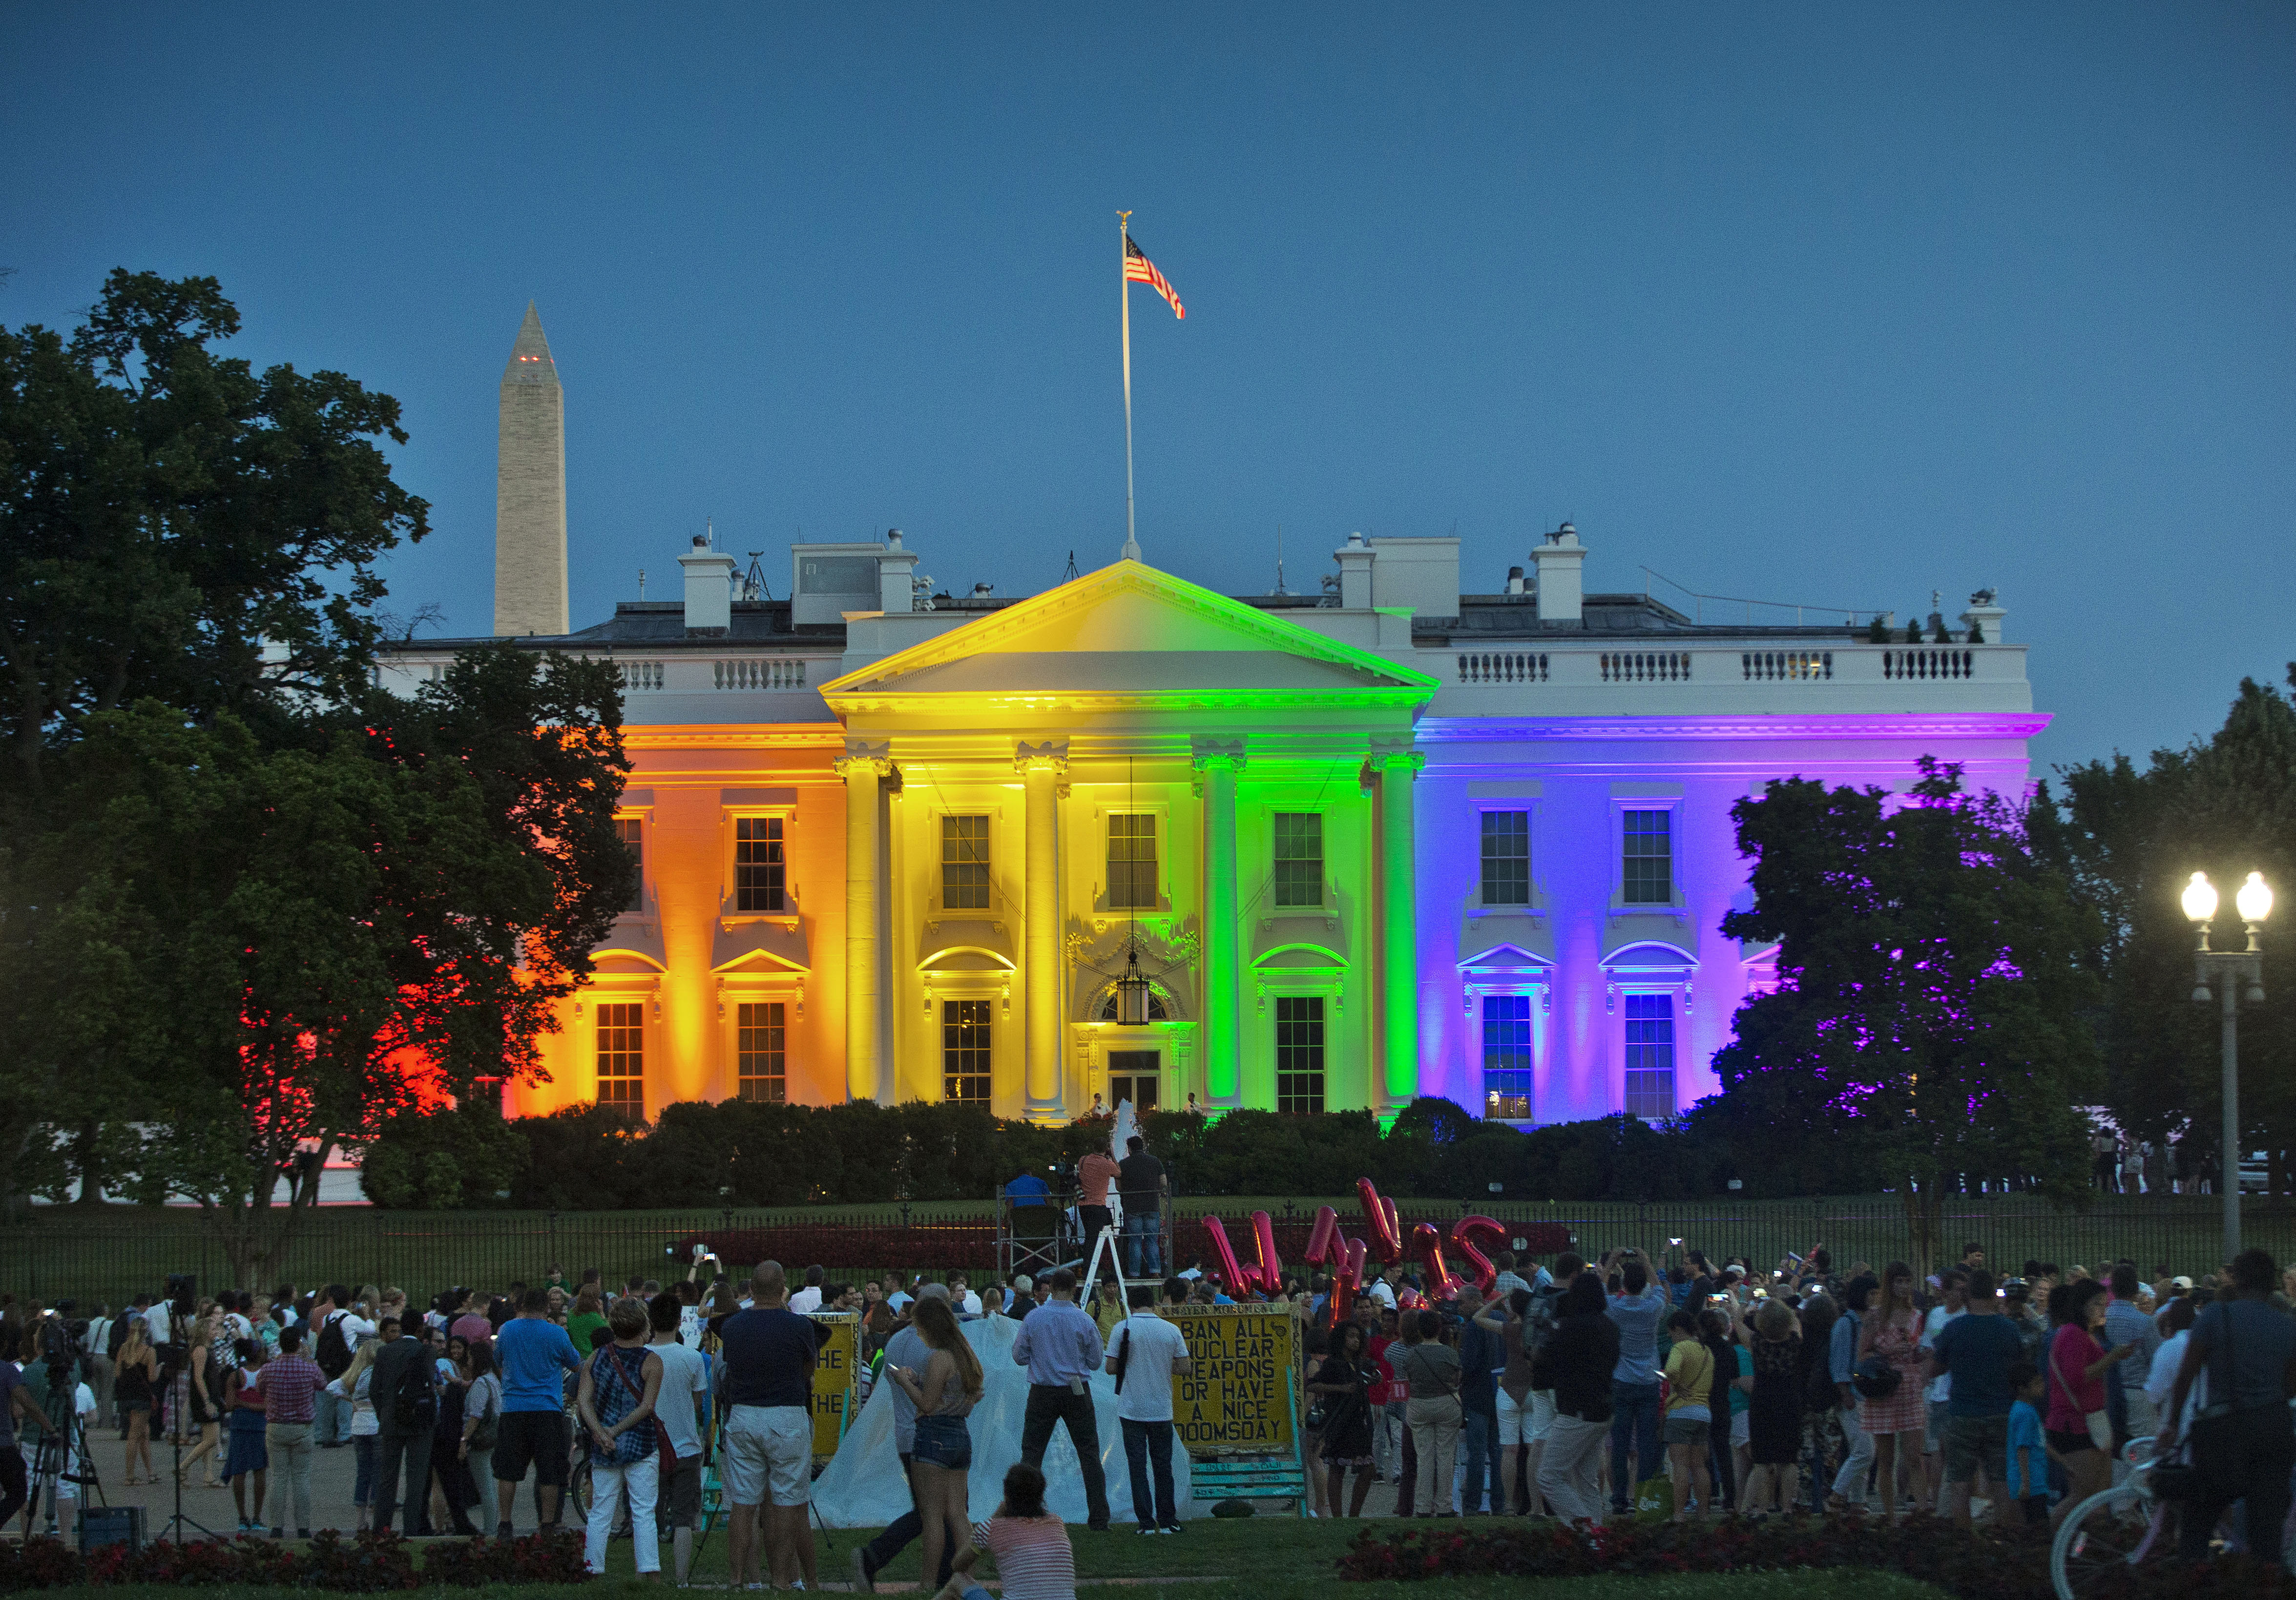 In this Friday, June 26, 2015 file photo, people gather in Lafayette Park to see the White House illuminated with rainbow colors in commemoration of the Supreme Court's ruling to legalize same-sex marriage in Washington. The Trump administration Friday, June 12, 2020, finalized a regulation that overturns Obama-era protections for transgender people against sex discrimination in health care. [PABLO MARTINEZ MONSIVAIS  |  AP]